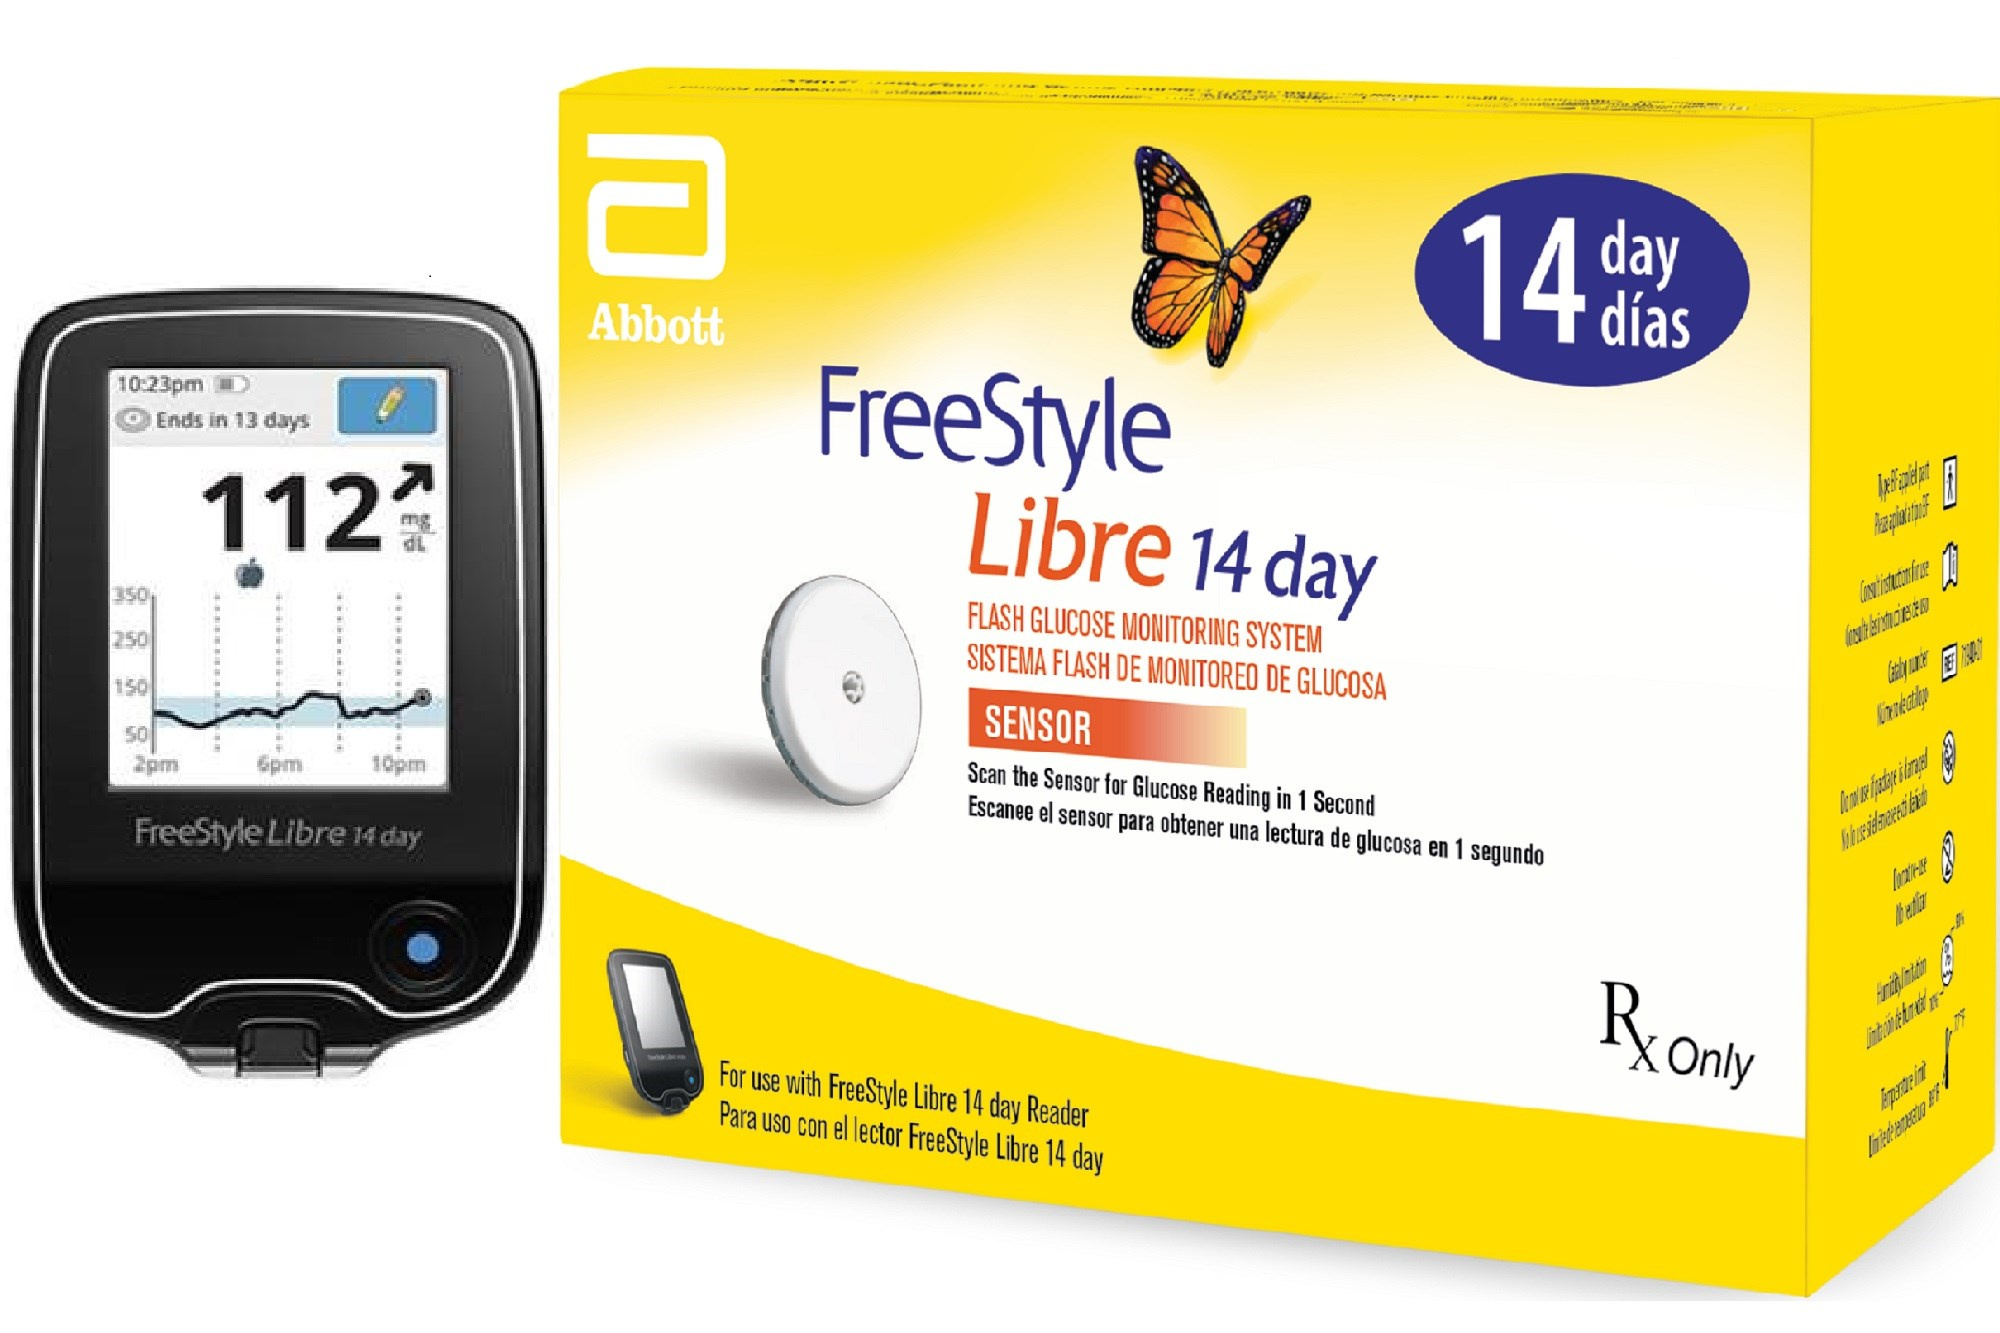 FDA Approves FreeStyle Libre 14 Day Flash Glucose Monitoring System